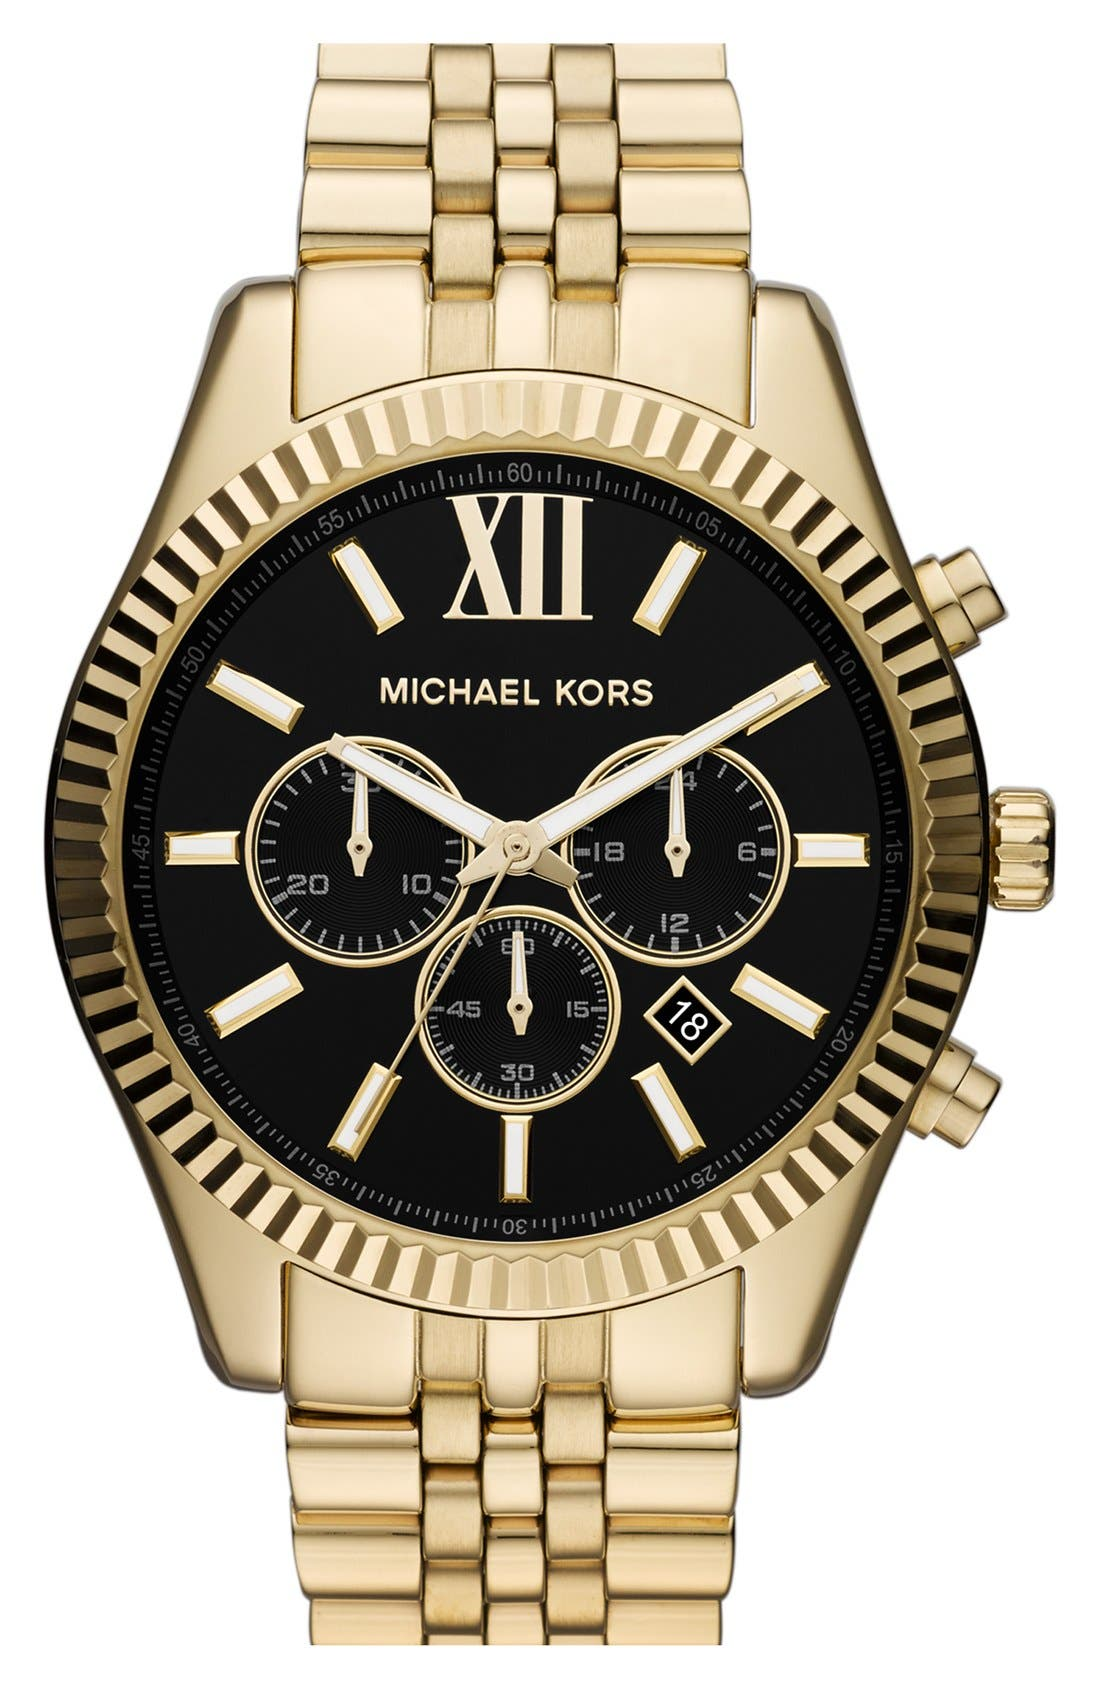 MICHAEL KORS, 'Large Lexington' Chronograph Bracelet Watch, 45mm, Main thumbnail 1, color, GOLD/ BLACK